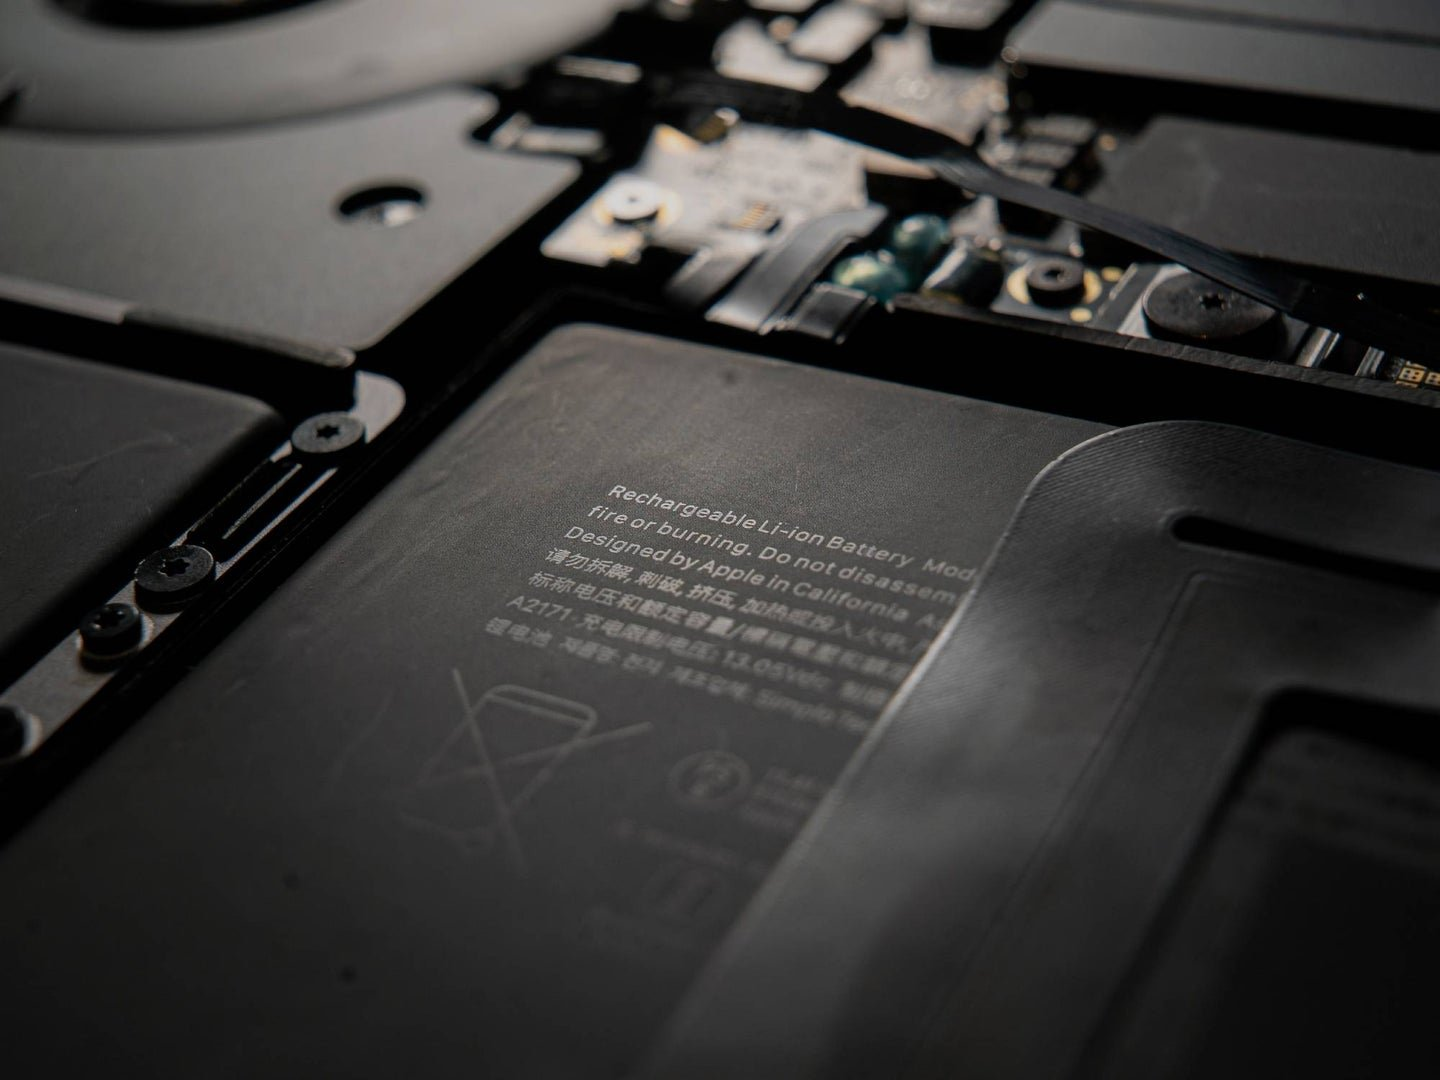 One telltale sign it's time to replace your laptop battery